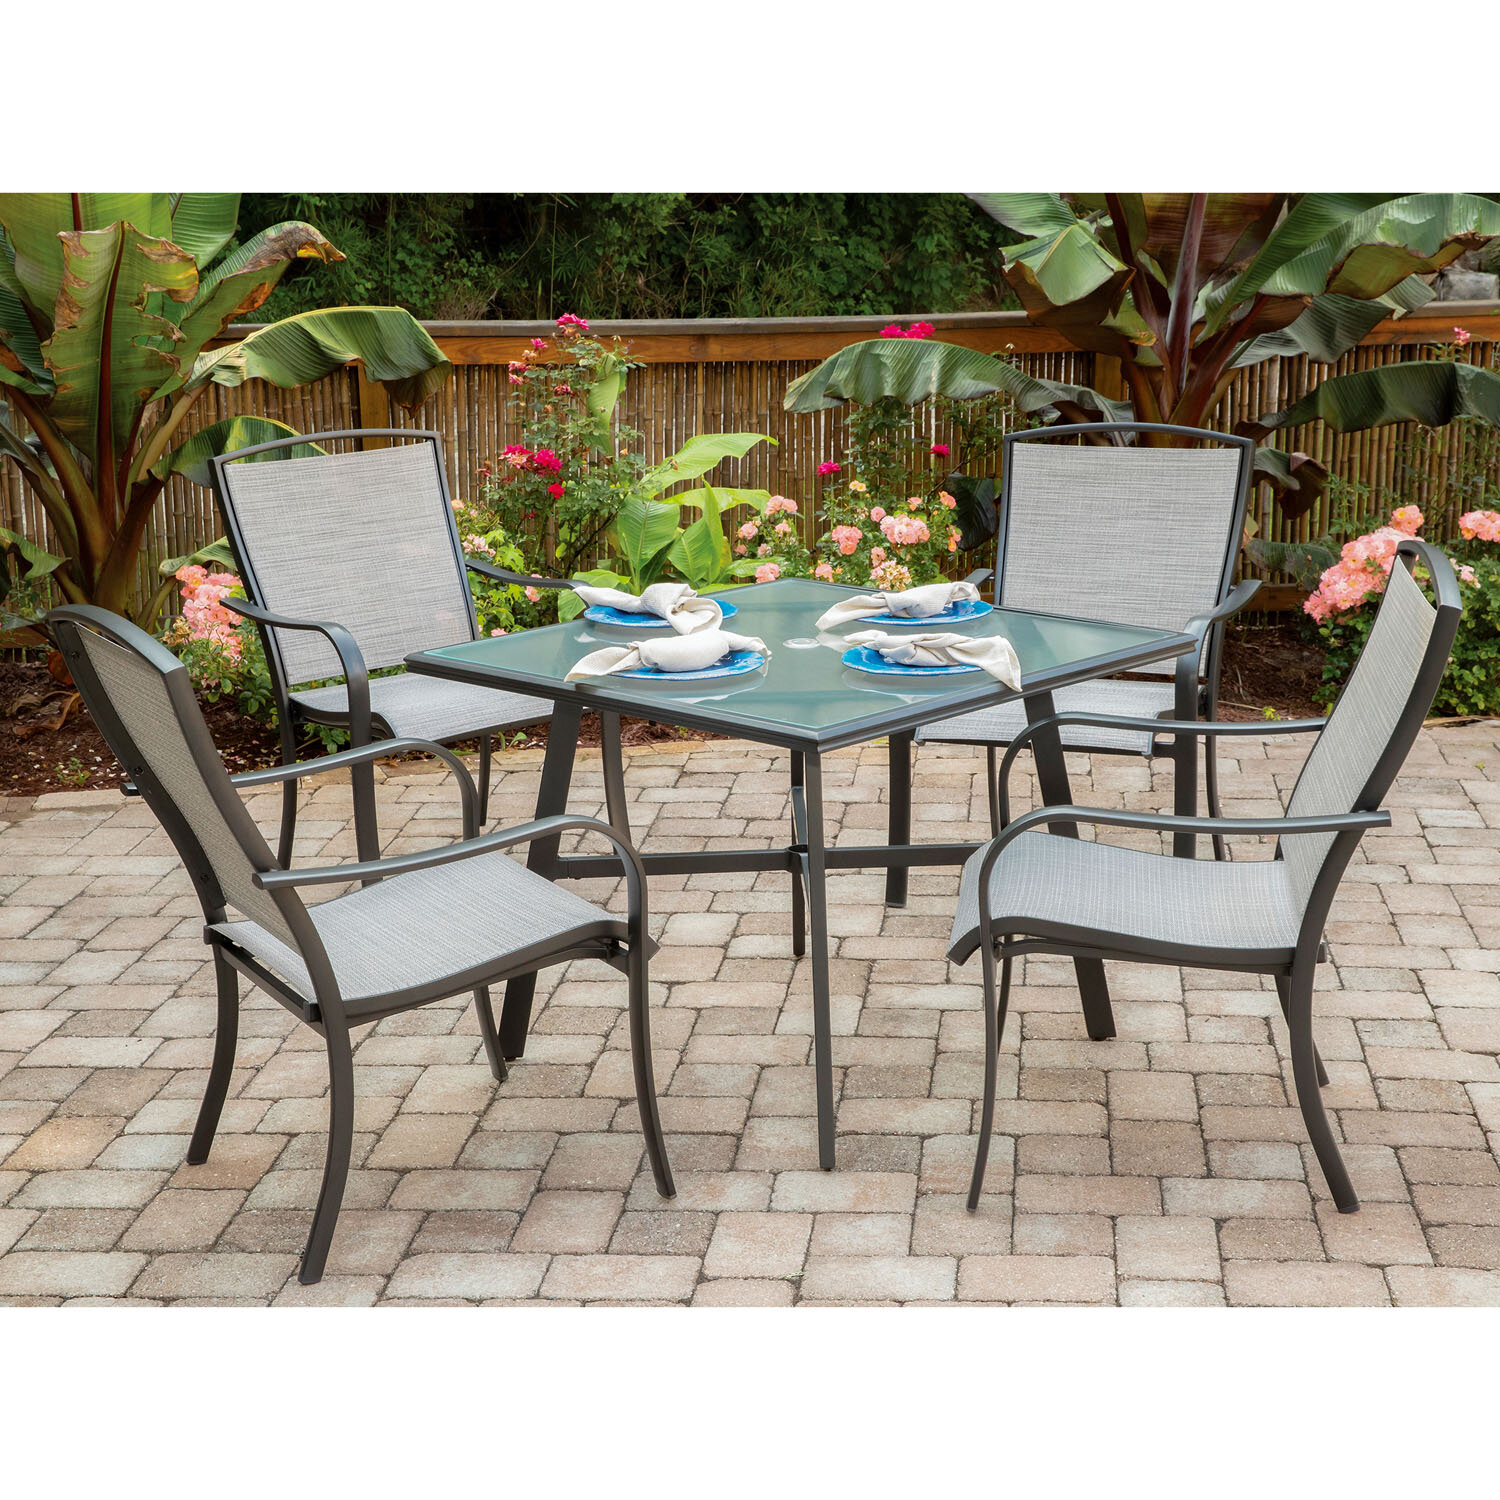 Charlton Home Wrenn 5 Piece Commercial Grade Patio Dining Set With 4 Sling Dining Chairs And A 38 Square Glass Top Table Wayfair